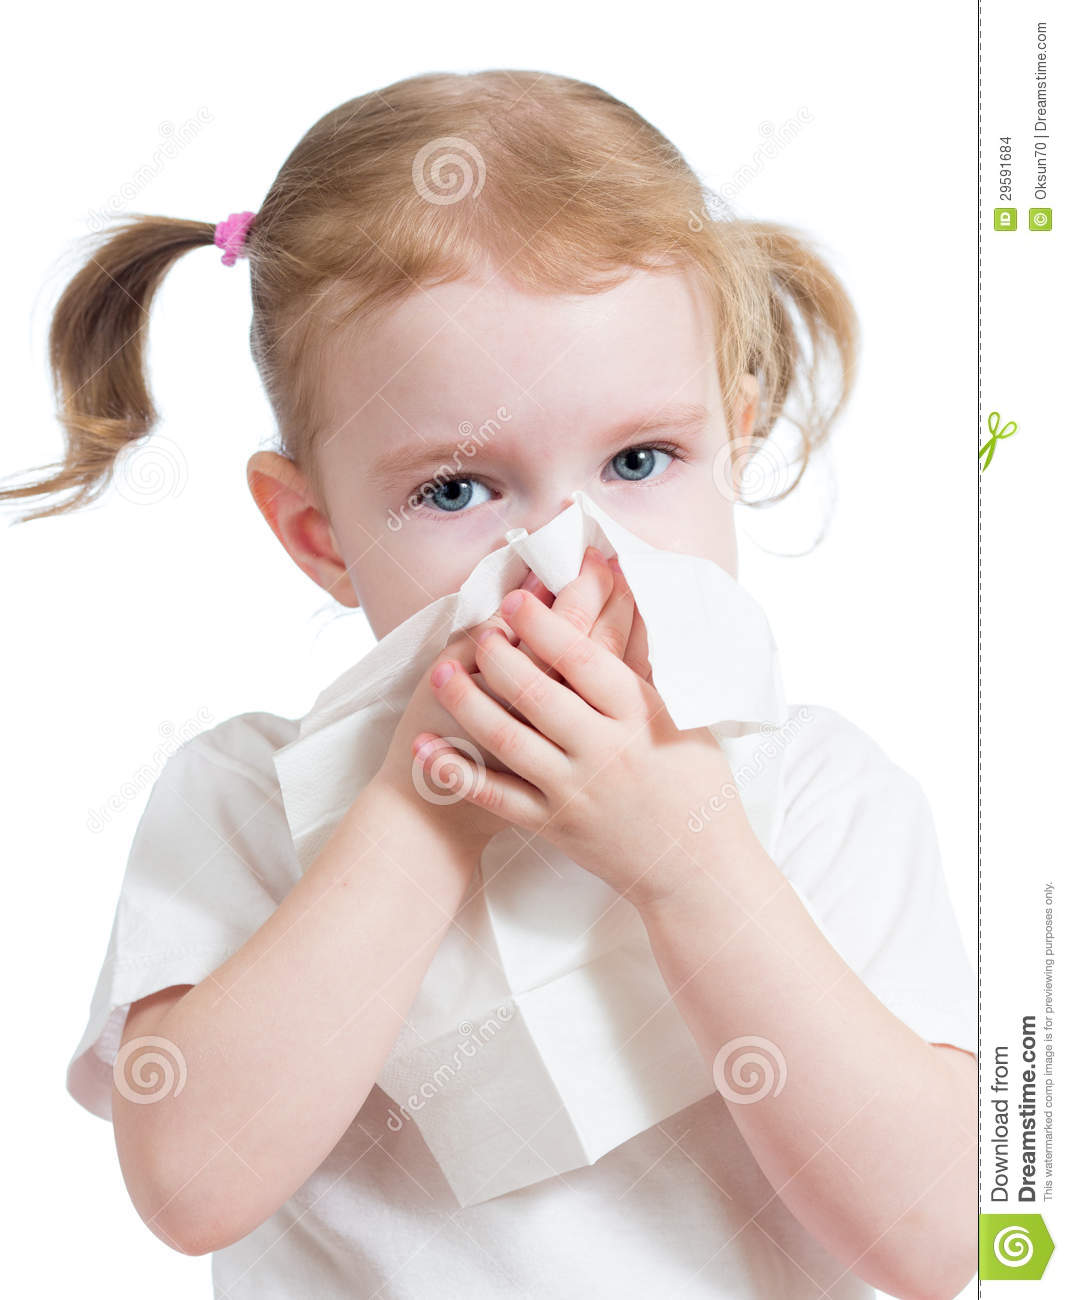 Kid Cleaning Running Nose With Tissue Isolated Stock Images - Image ...